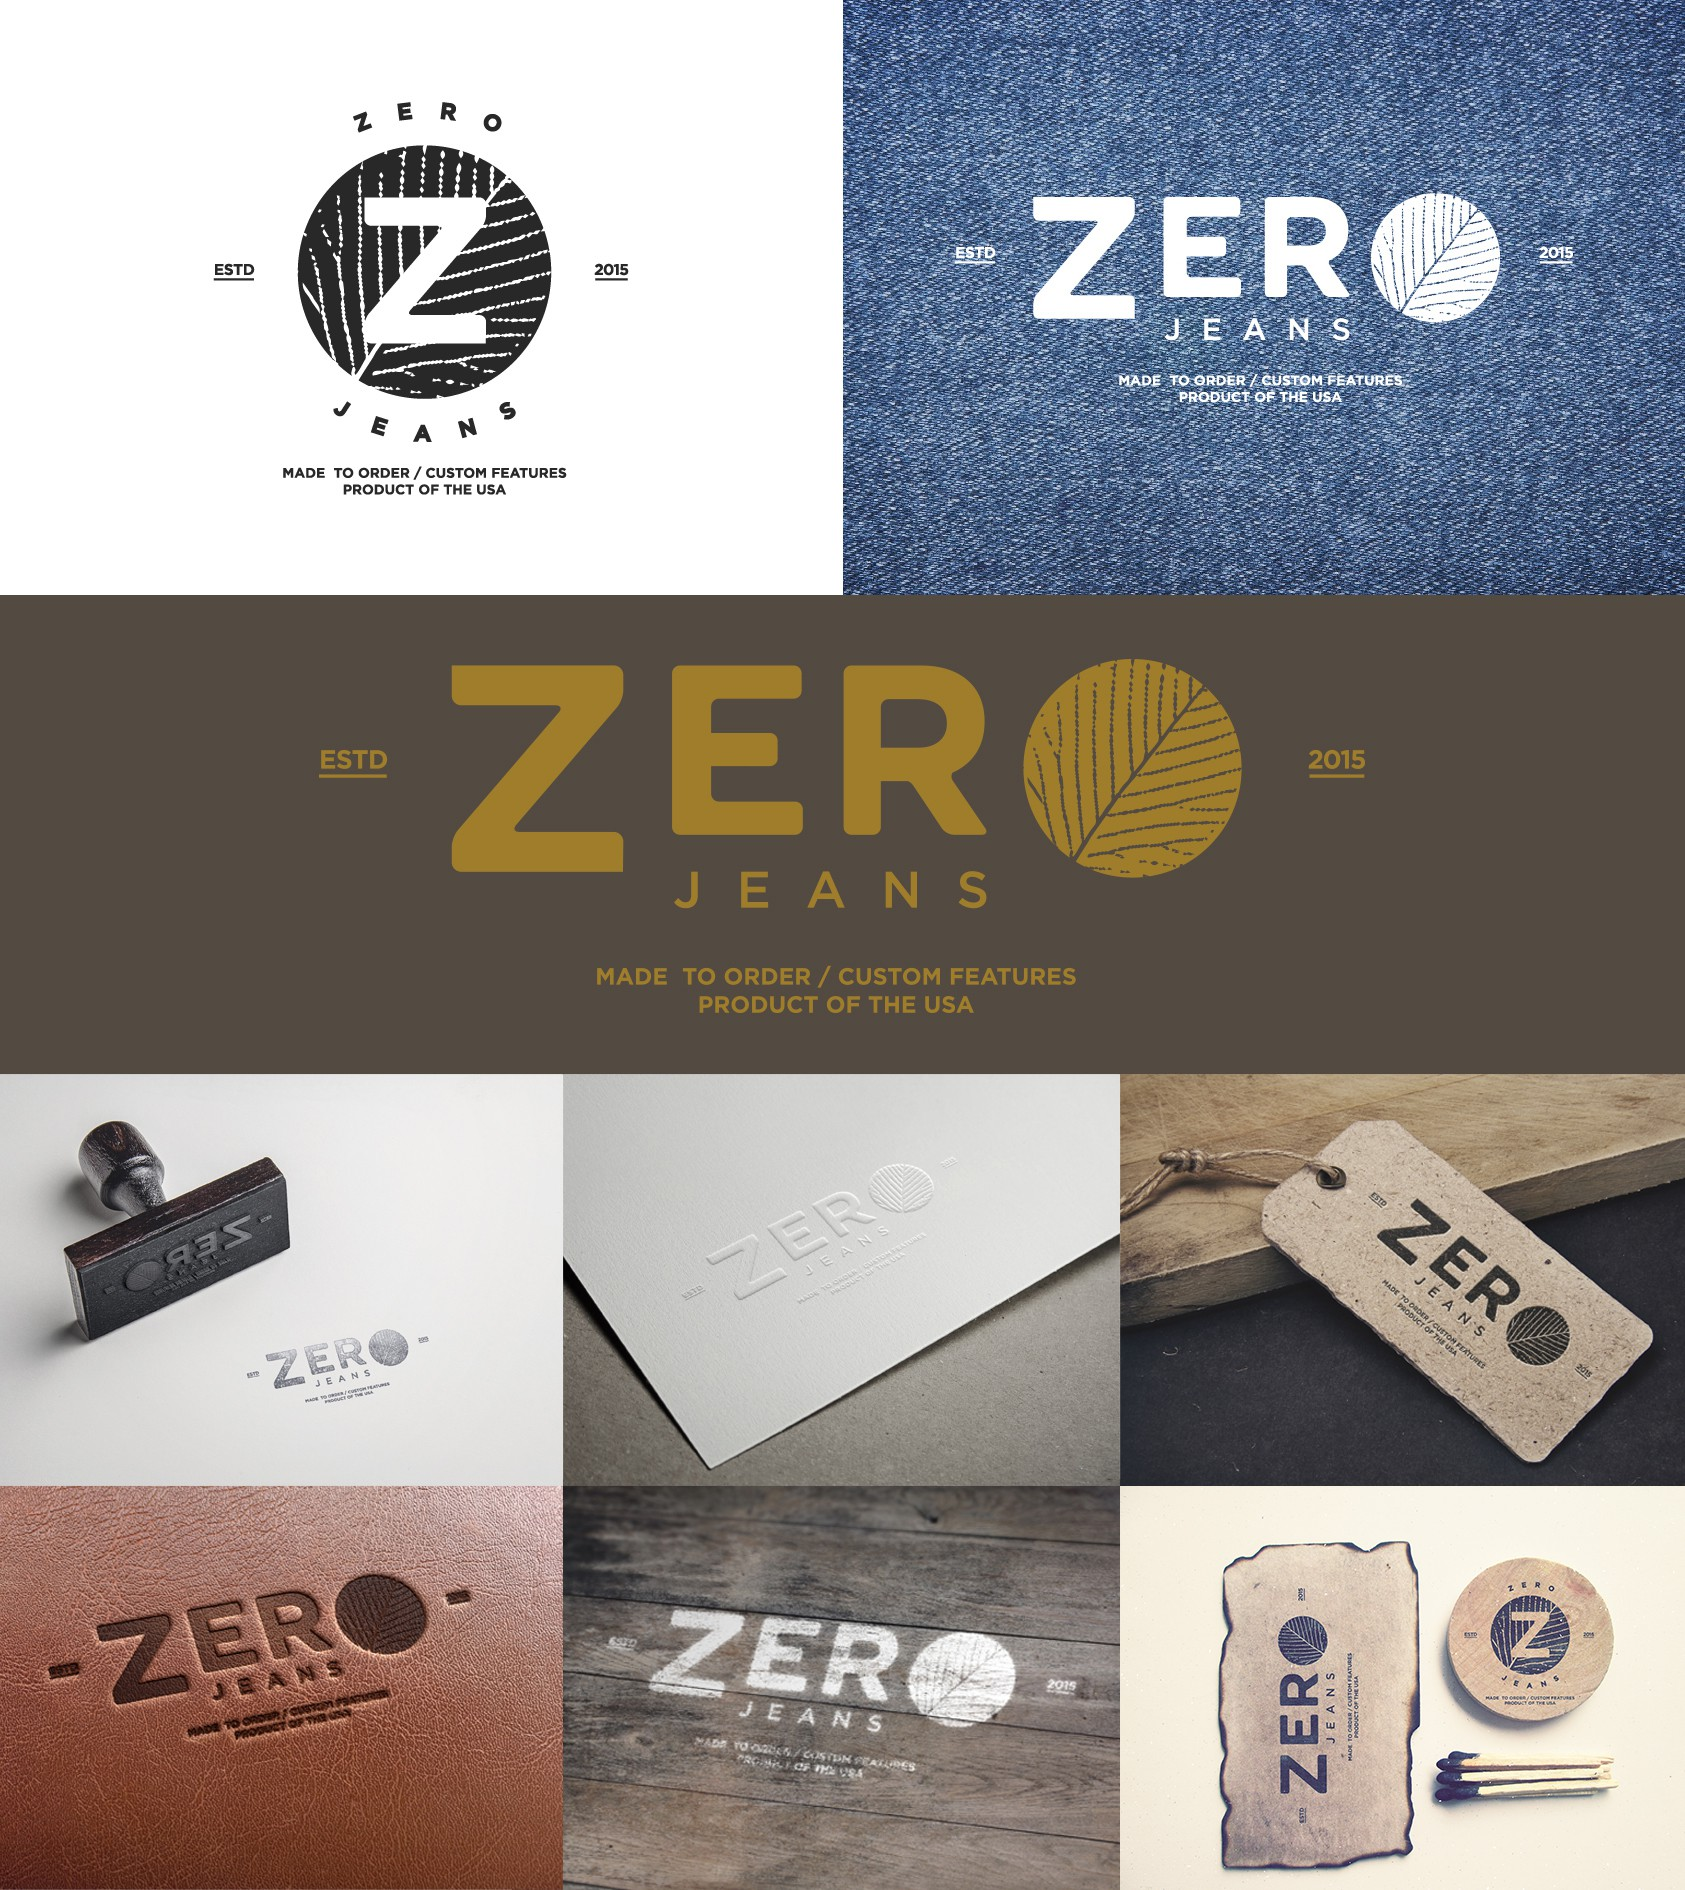 Create a logo for a startup custom jeans brand